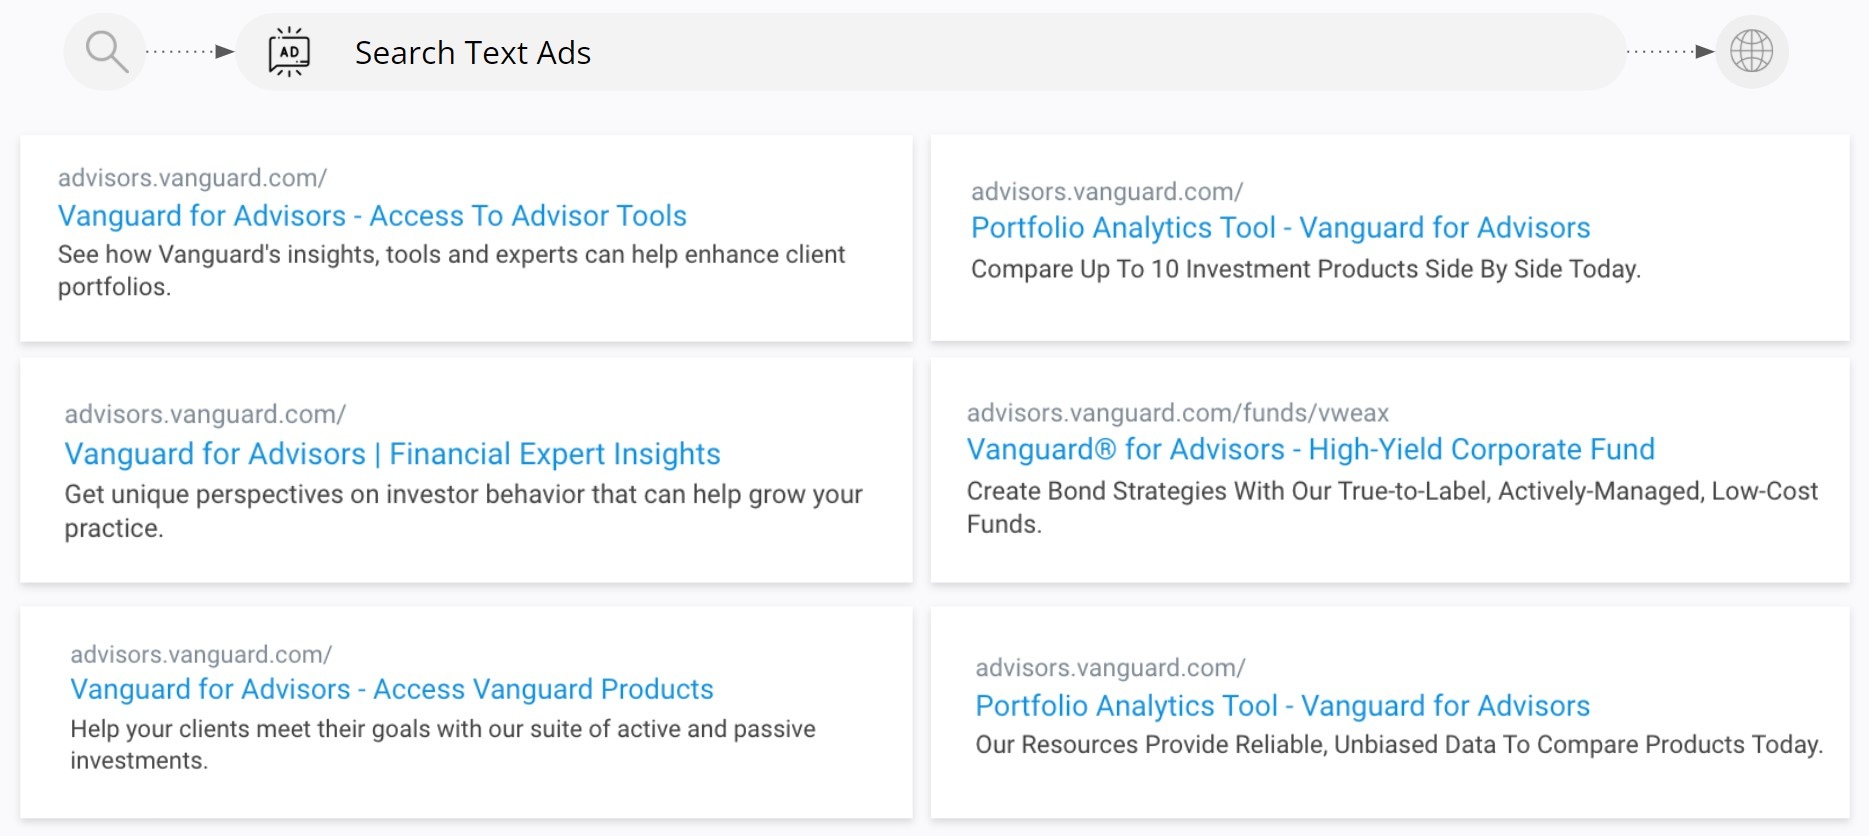 Vanguard - Search Text Ads